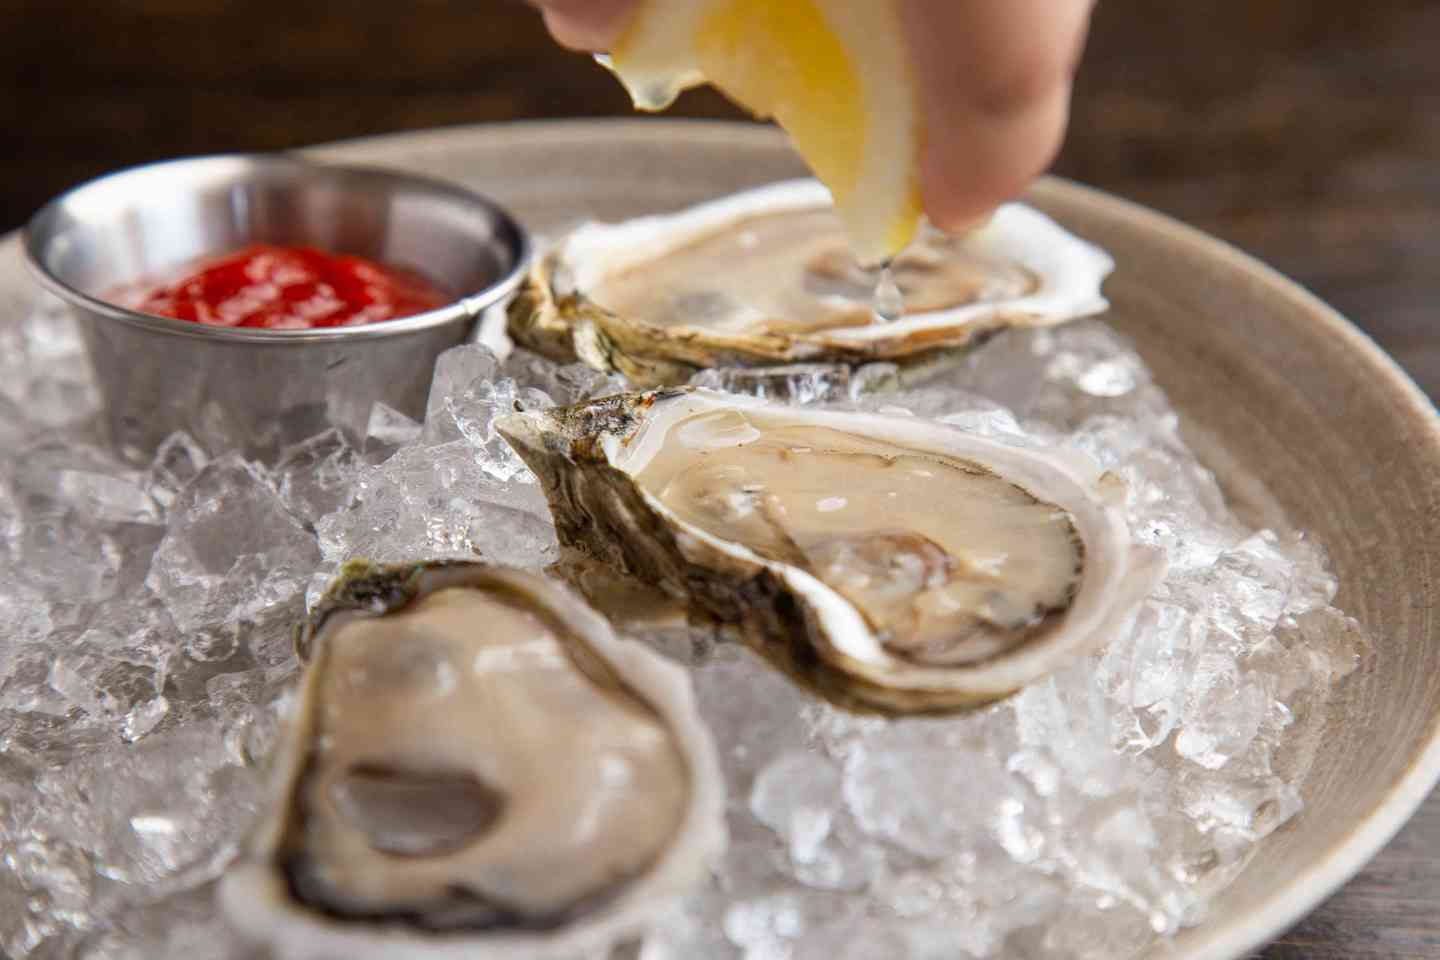 6 Blish Point Oysters, MA